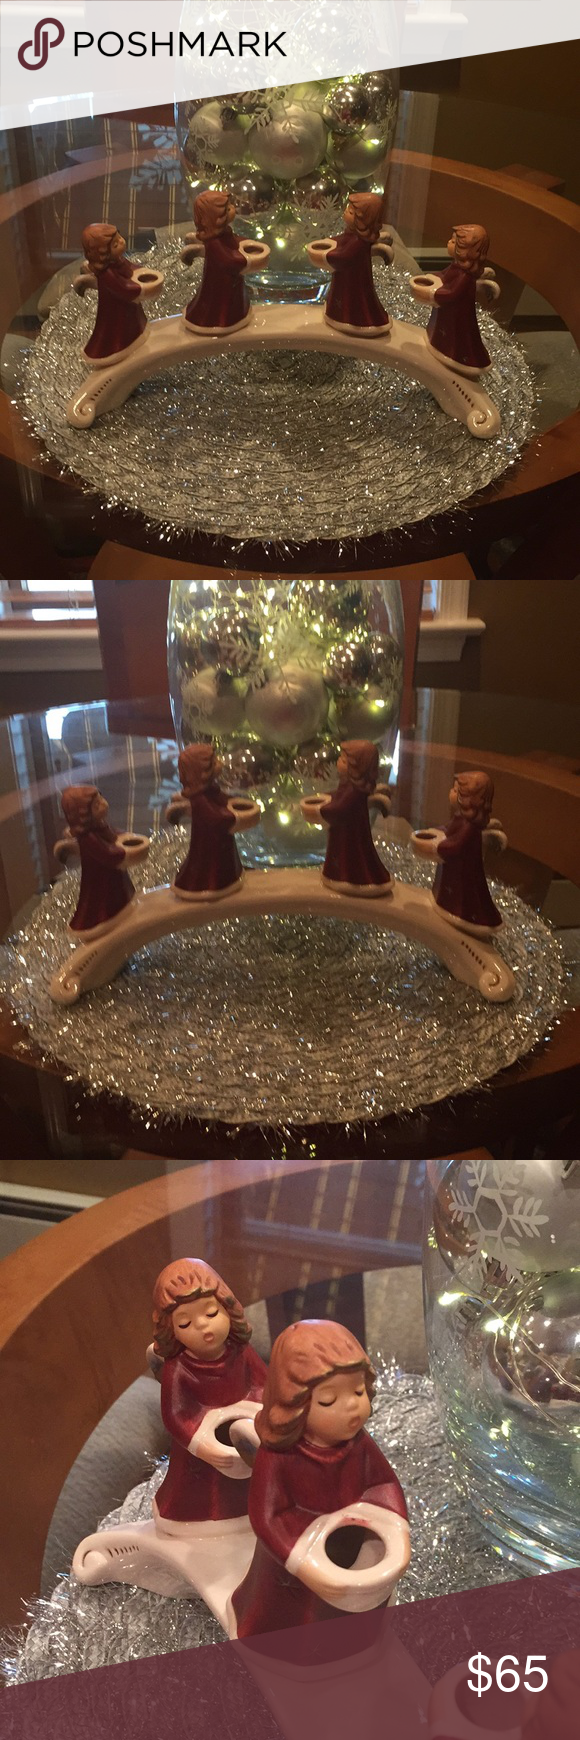 Goebel 1971 Angels On A Bridge Candle Holder In 2020 Candle Holders Candles Beautiful Christmas